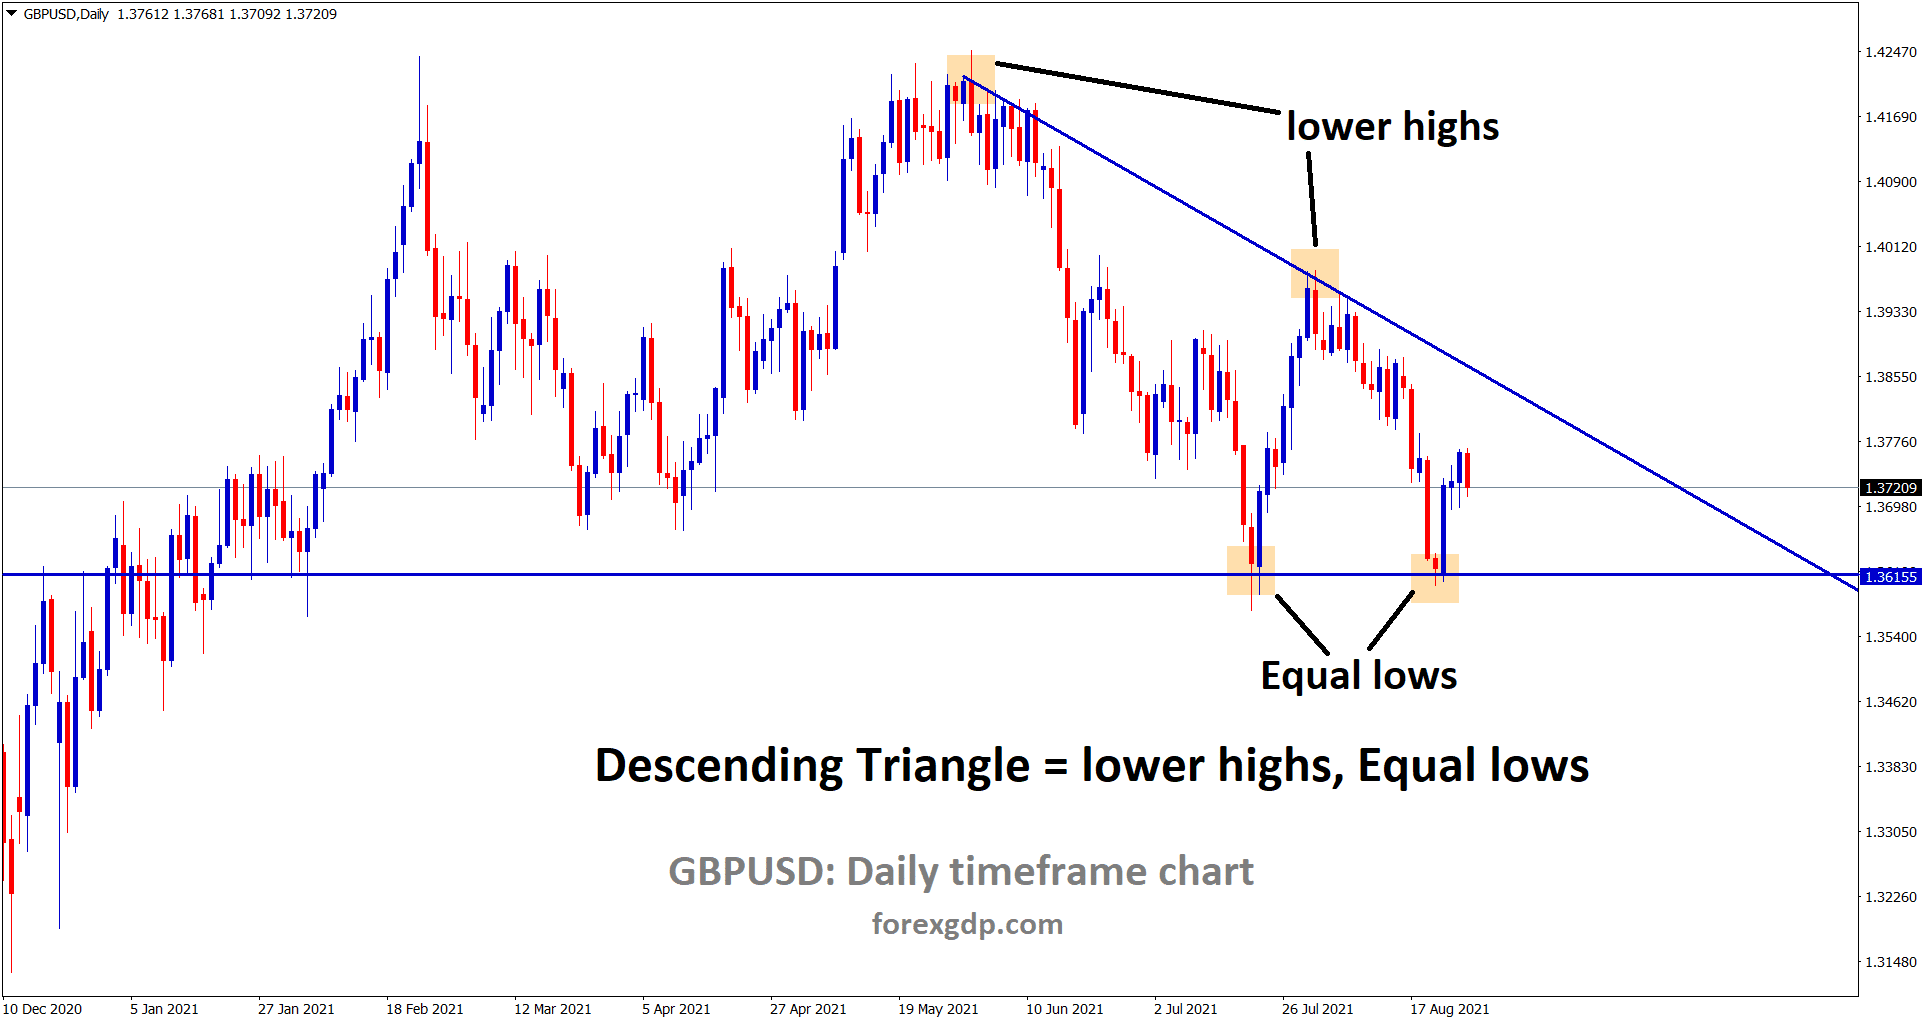 GBPUSD is moving between the descending Triangle pattern